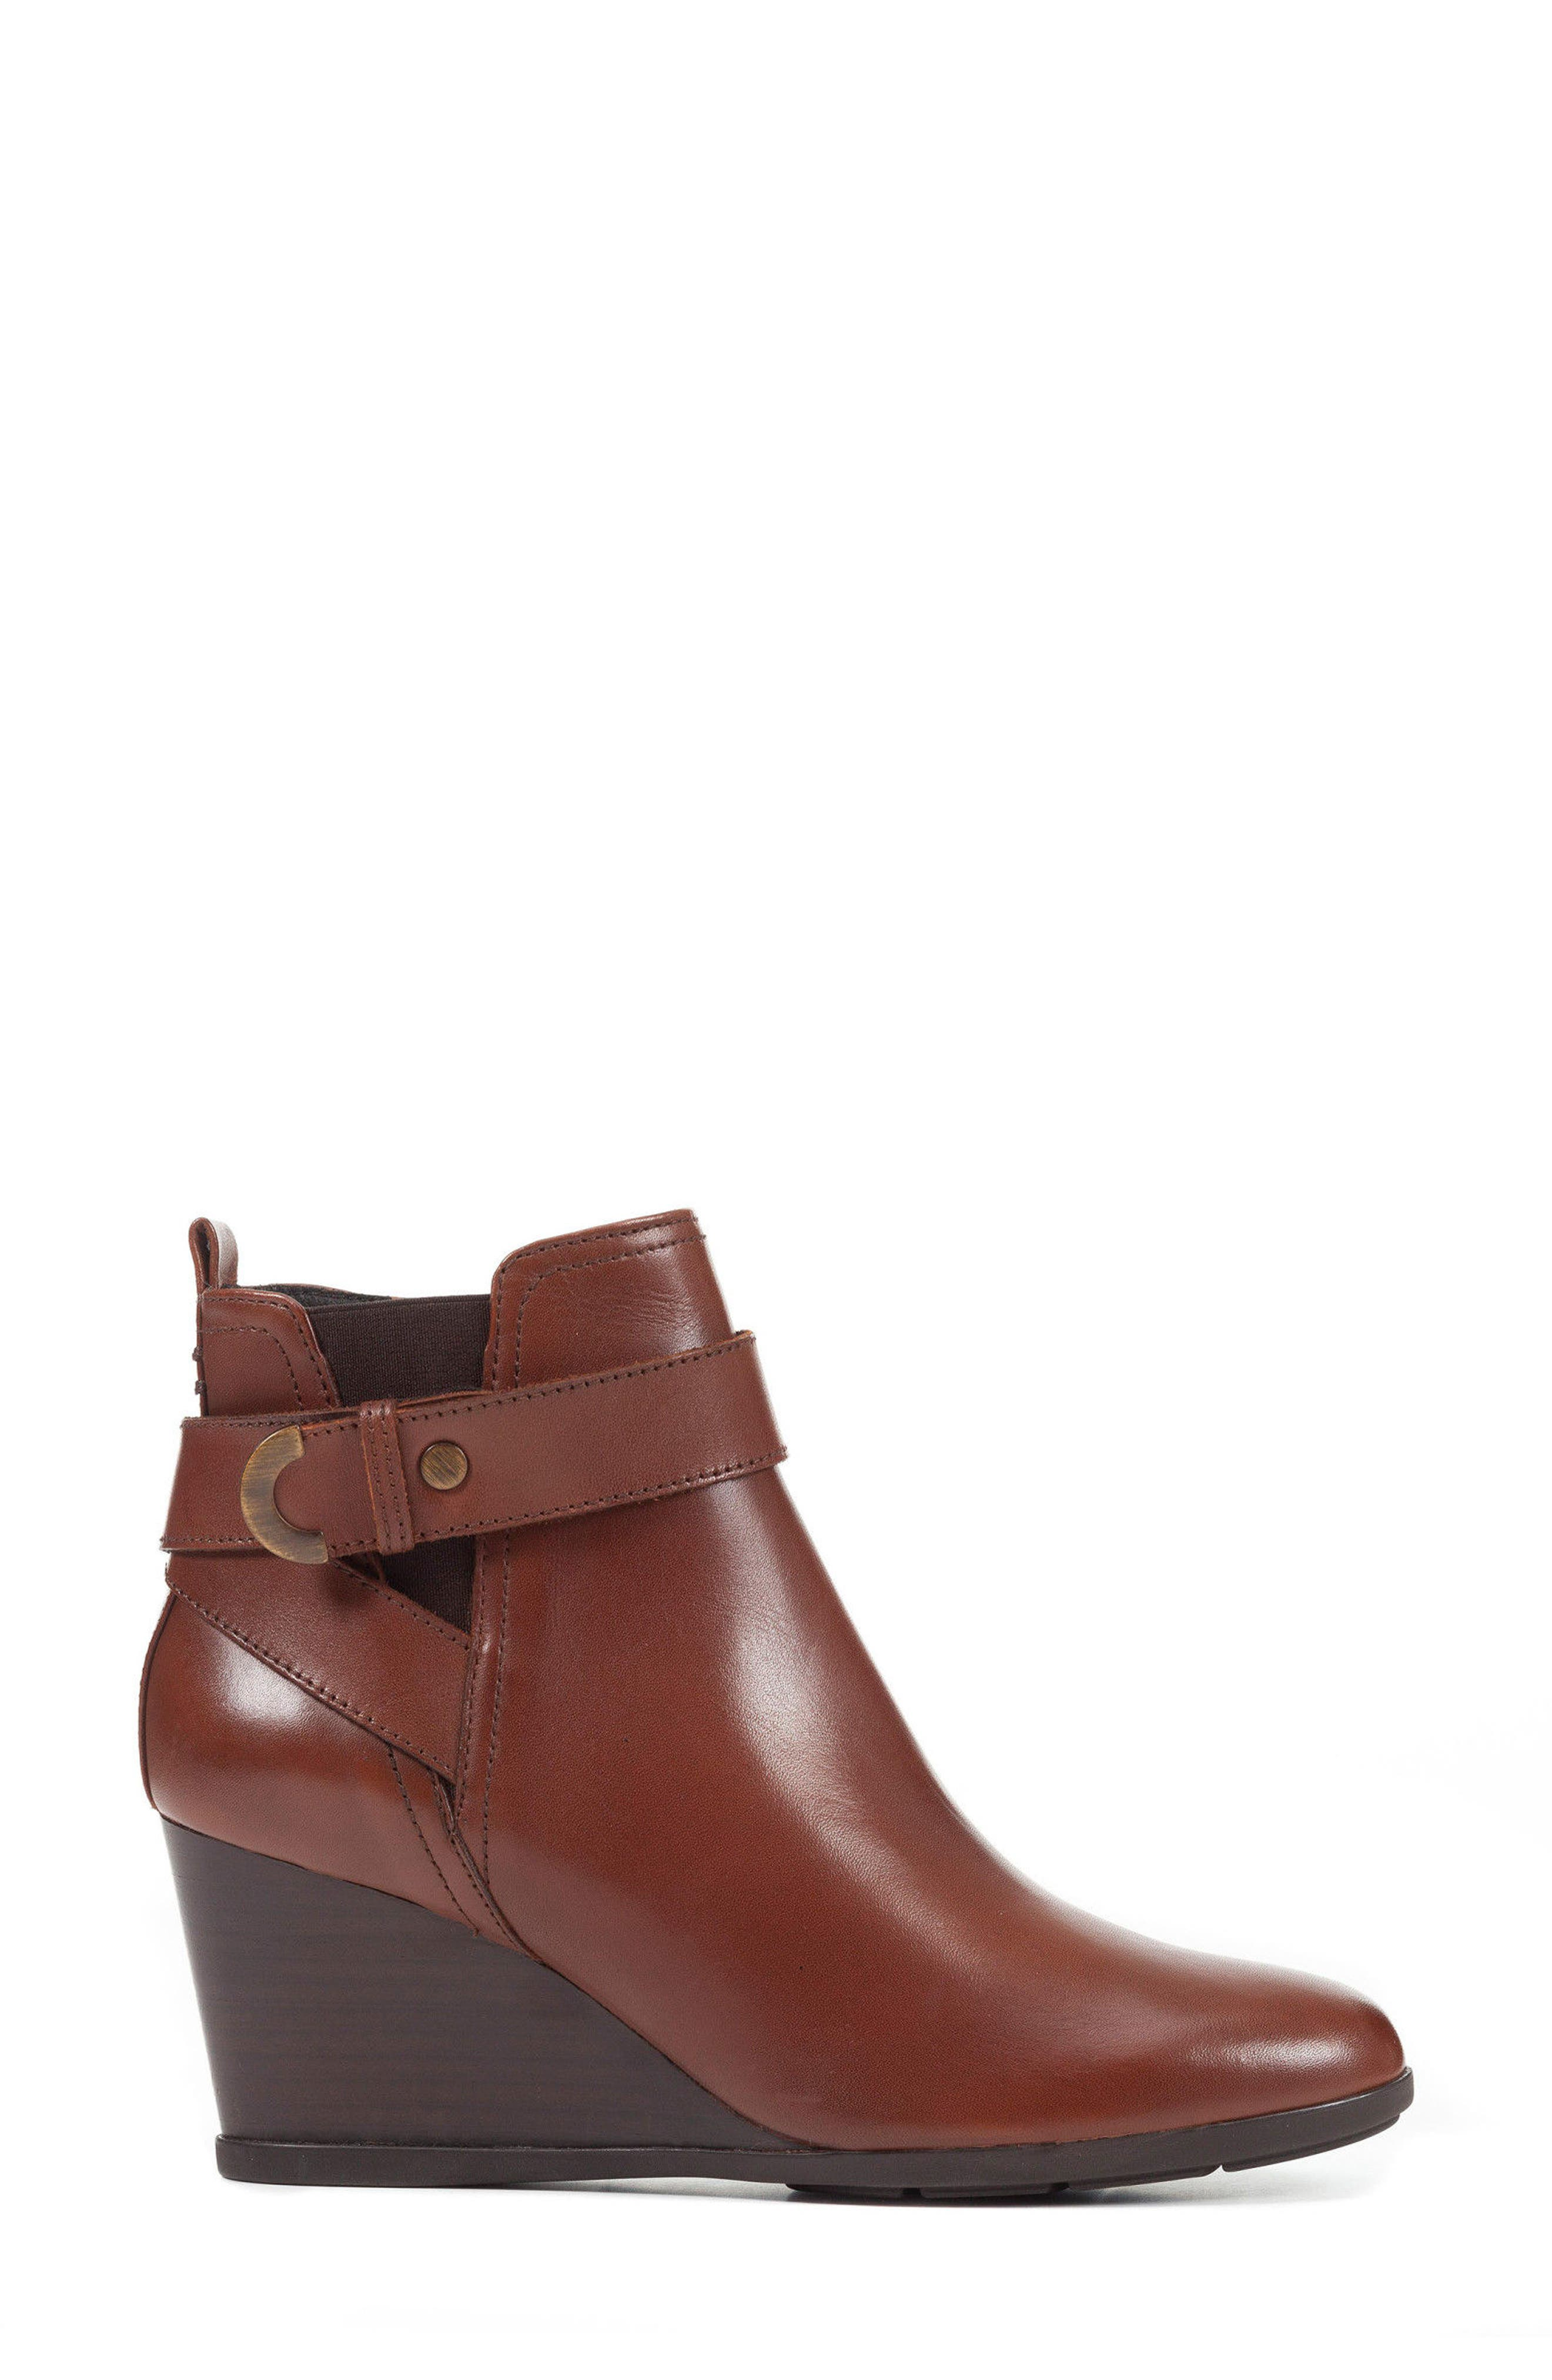 Inspiration Buckle Wedge Bootie,                             Alternate thumbnail 3, color,                             Brown Leather